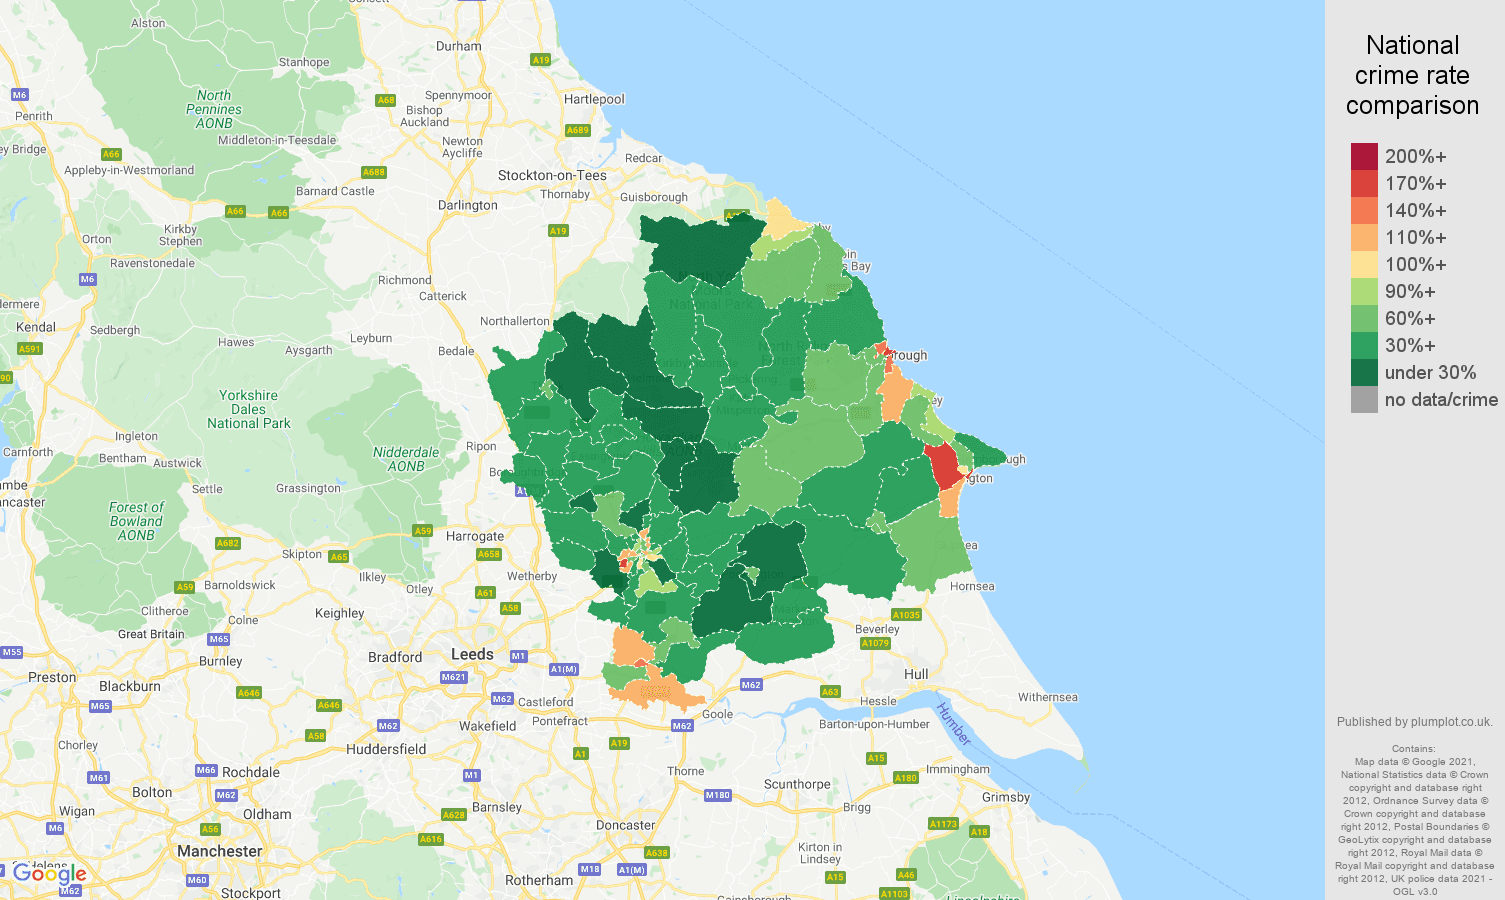 York violent crime rate comparison map